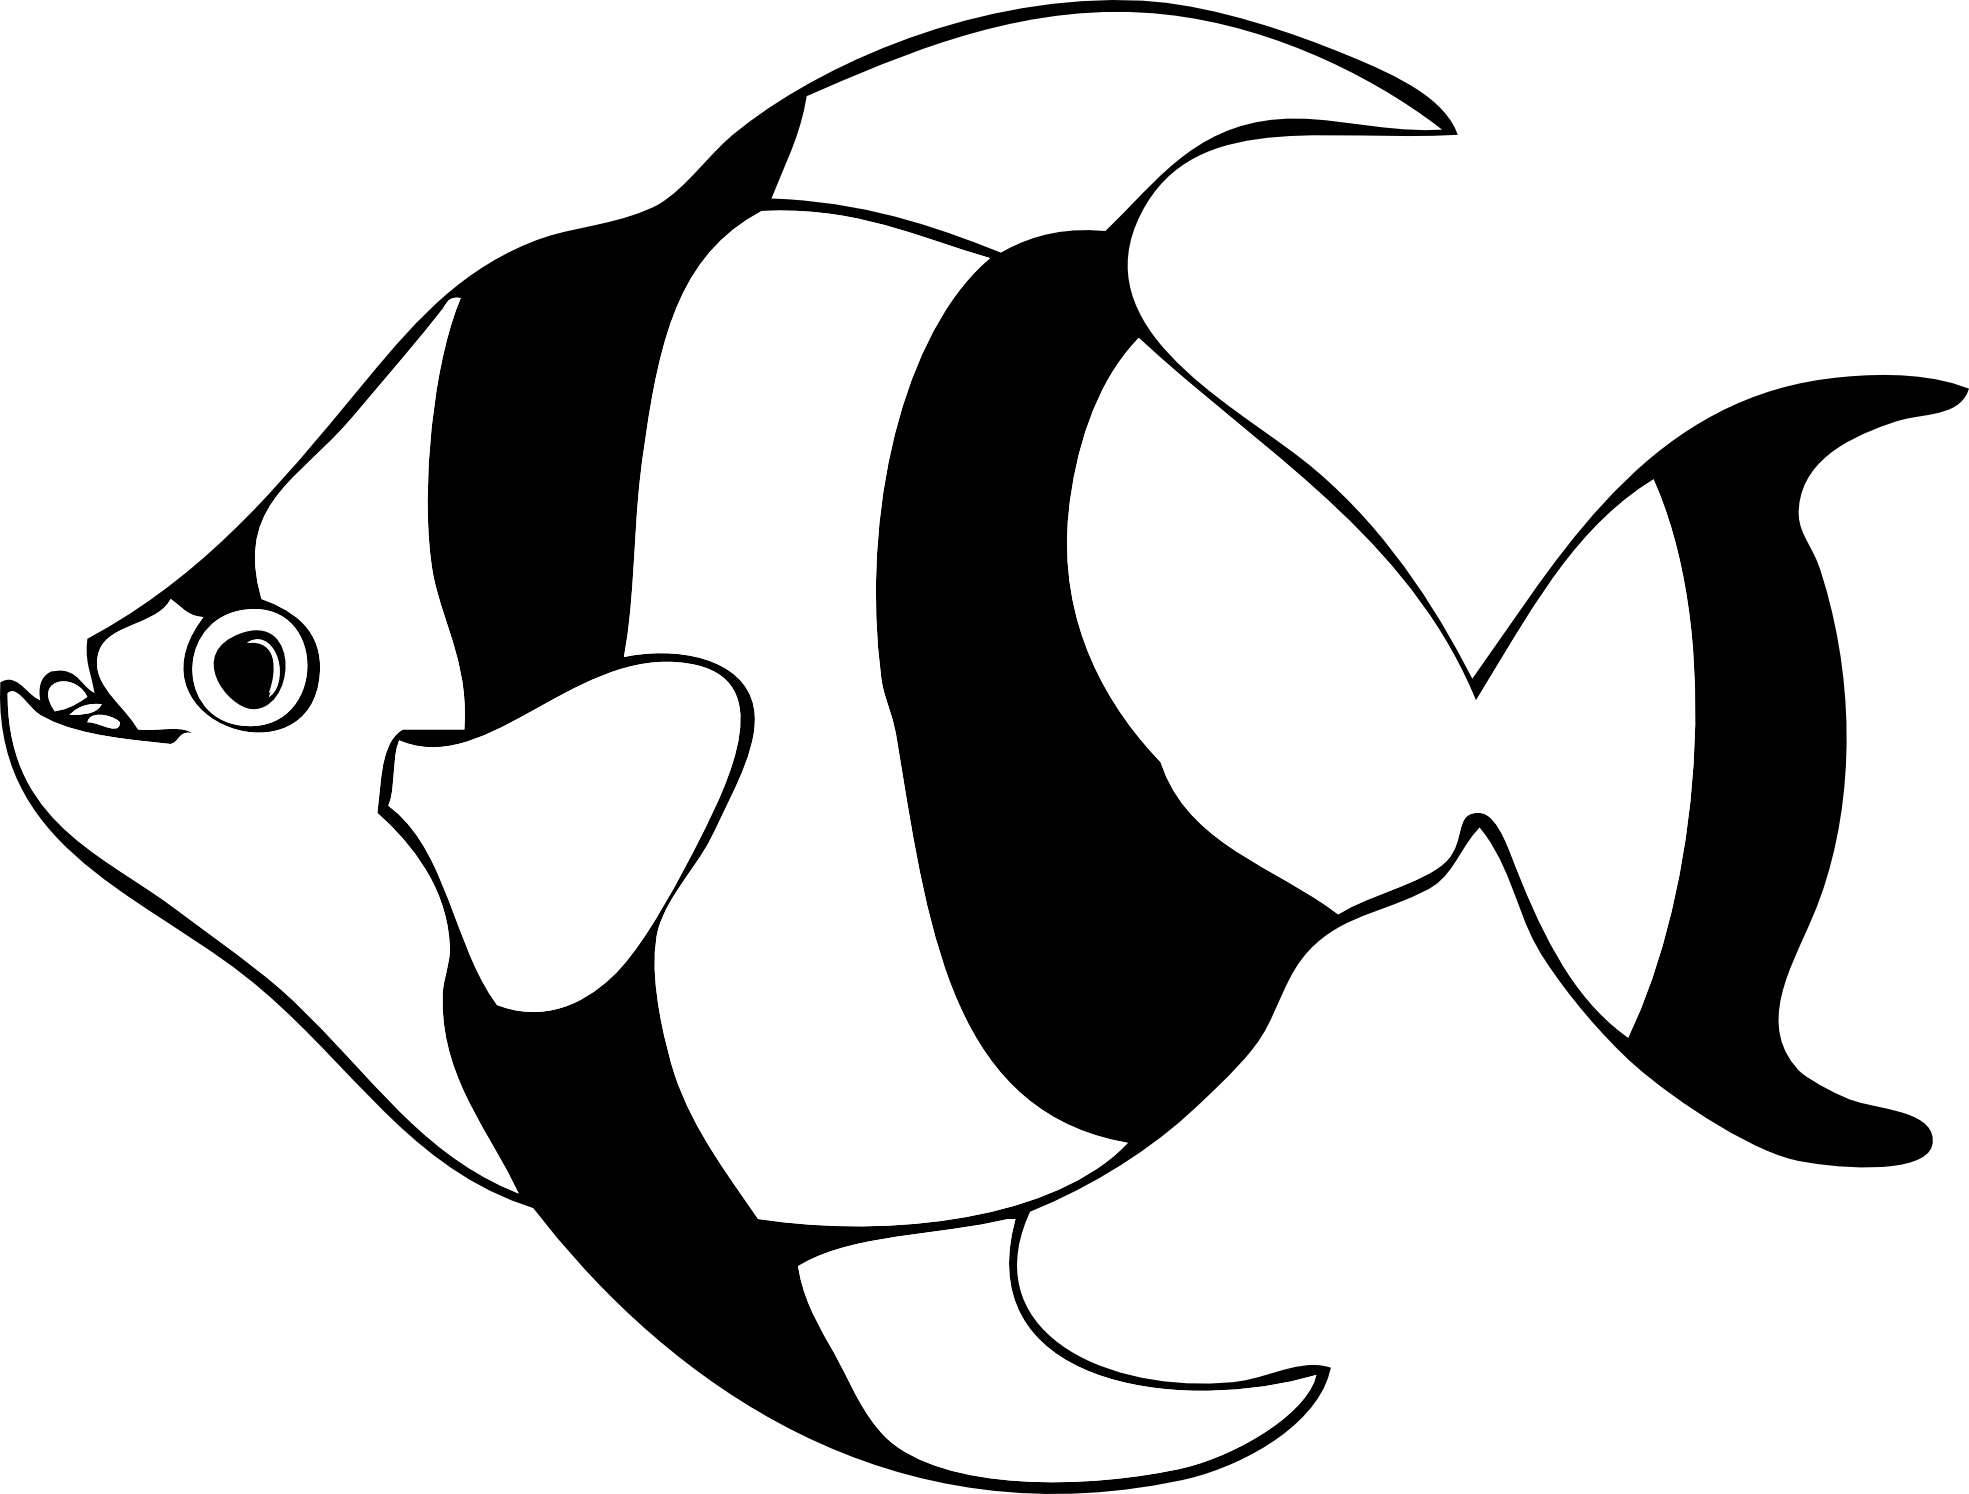 Cross and fish clipart banner stock Image result for clip art black and white fish | applique ideas ... banner stock